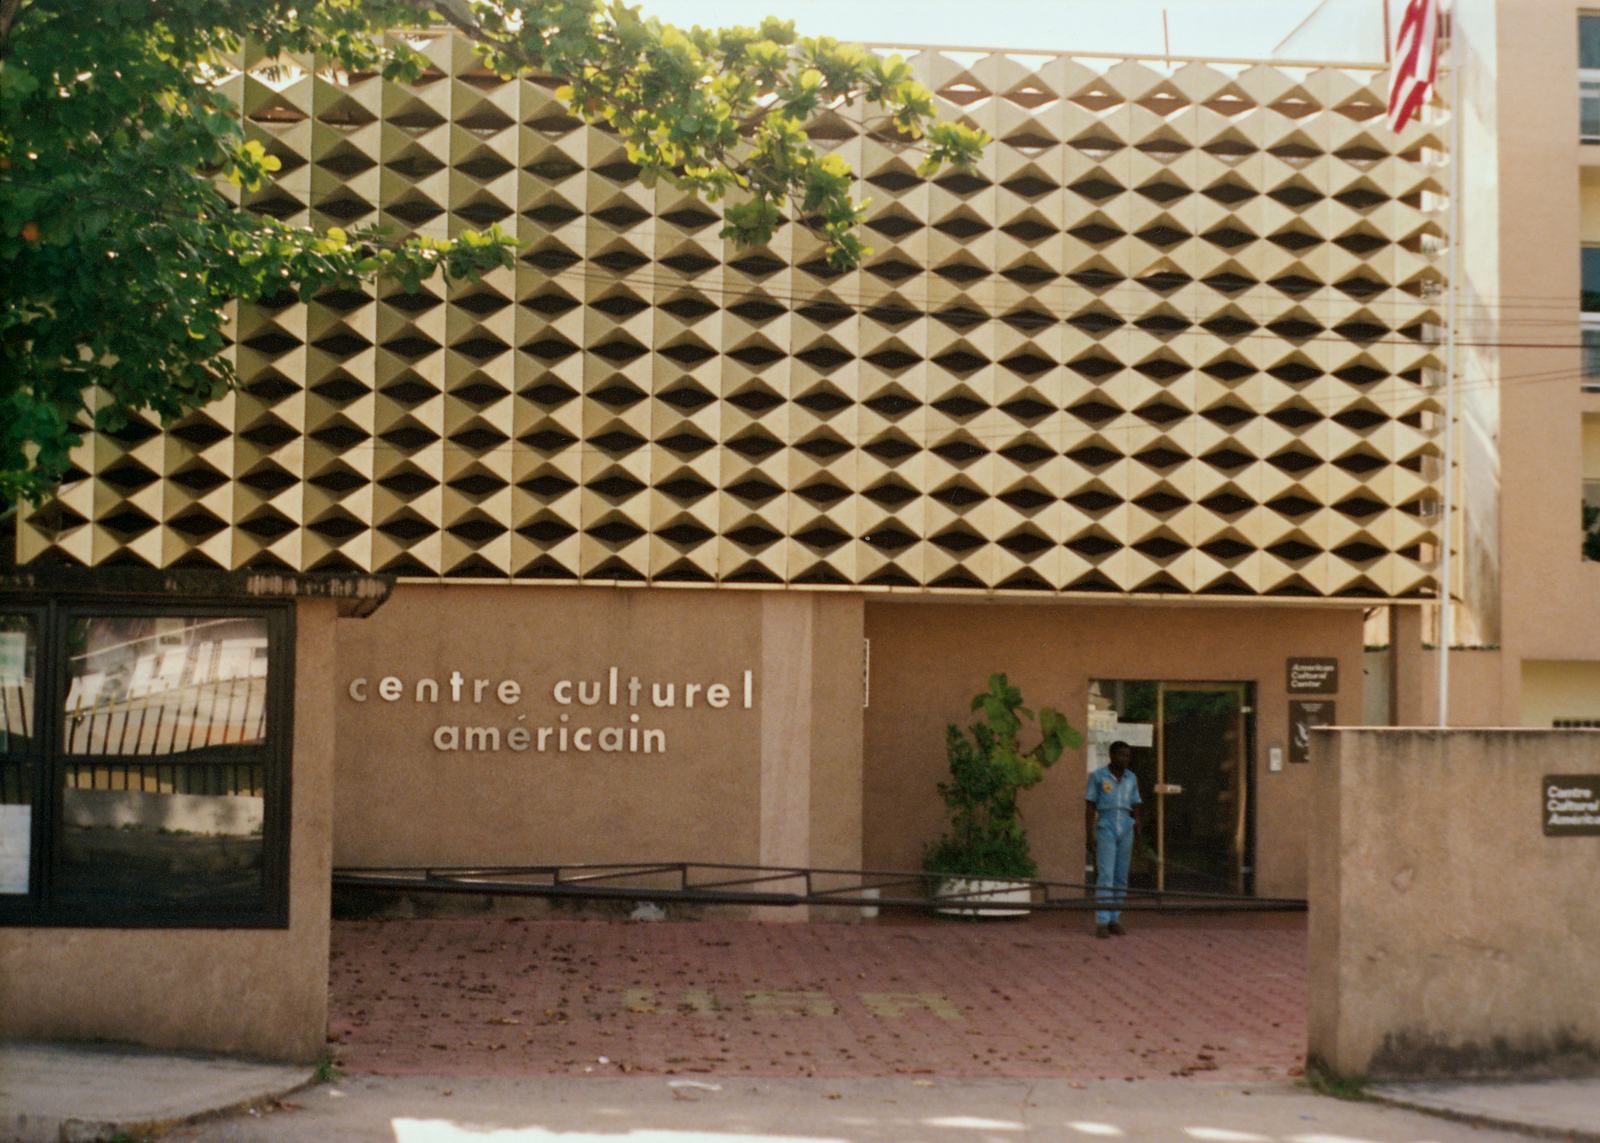 Libreville - Annex Office Building - 1991